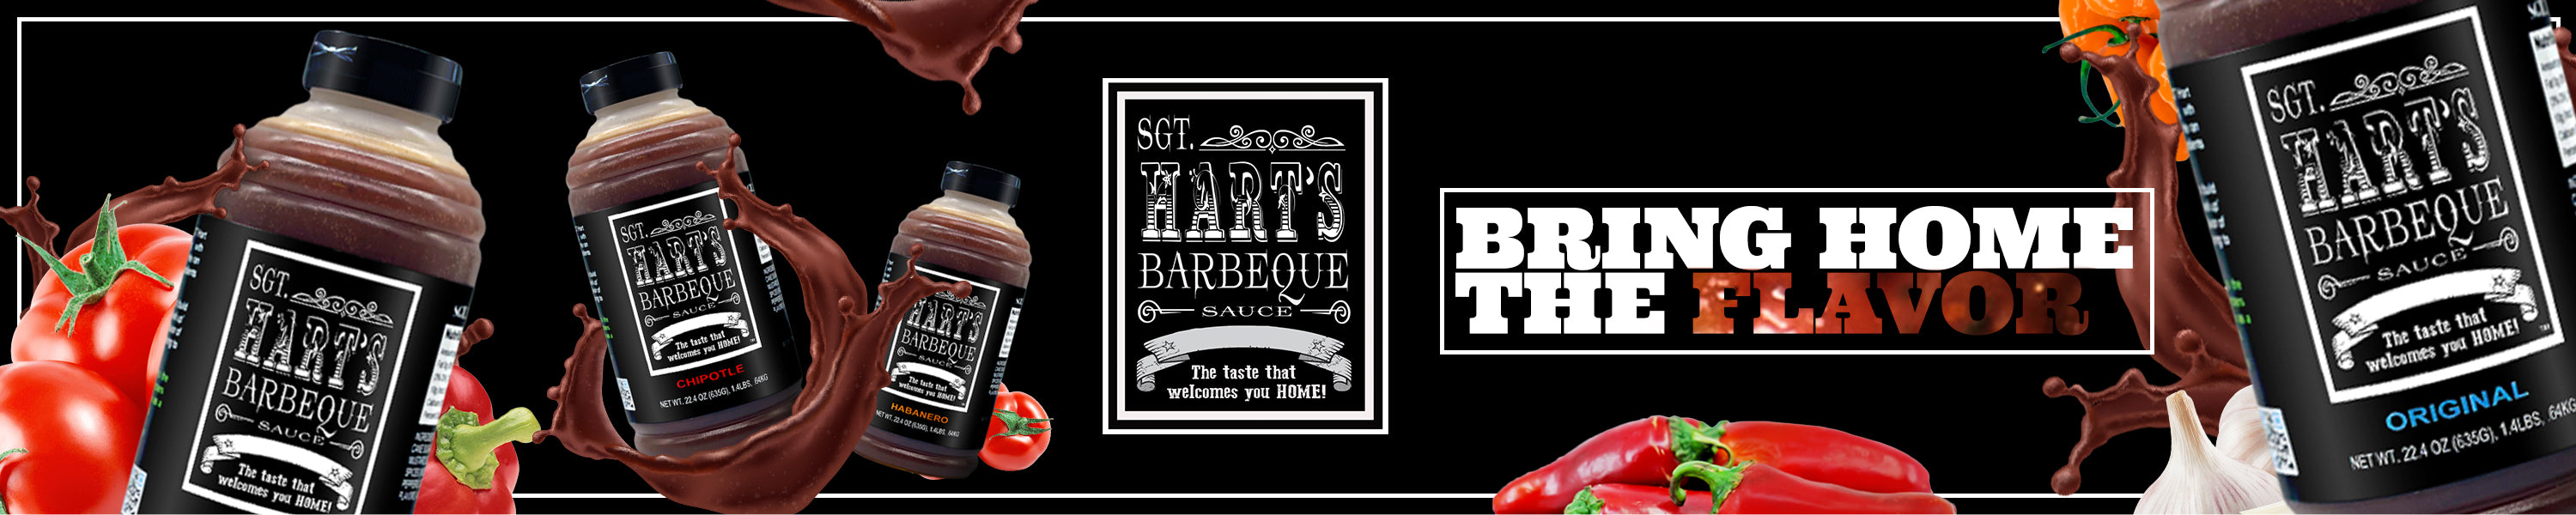 Bring Home The Flavor of SGT Hart's Barbecue Sauce